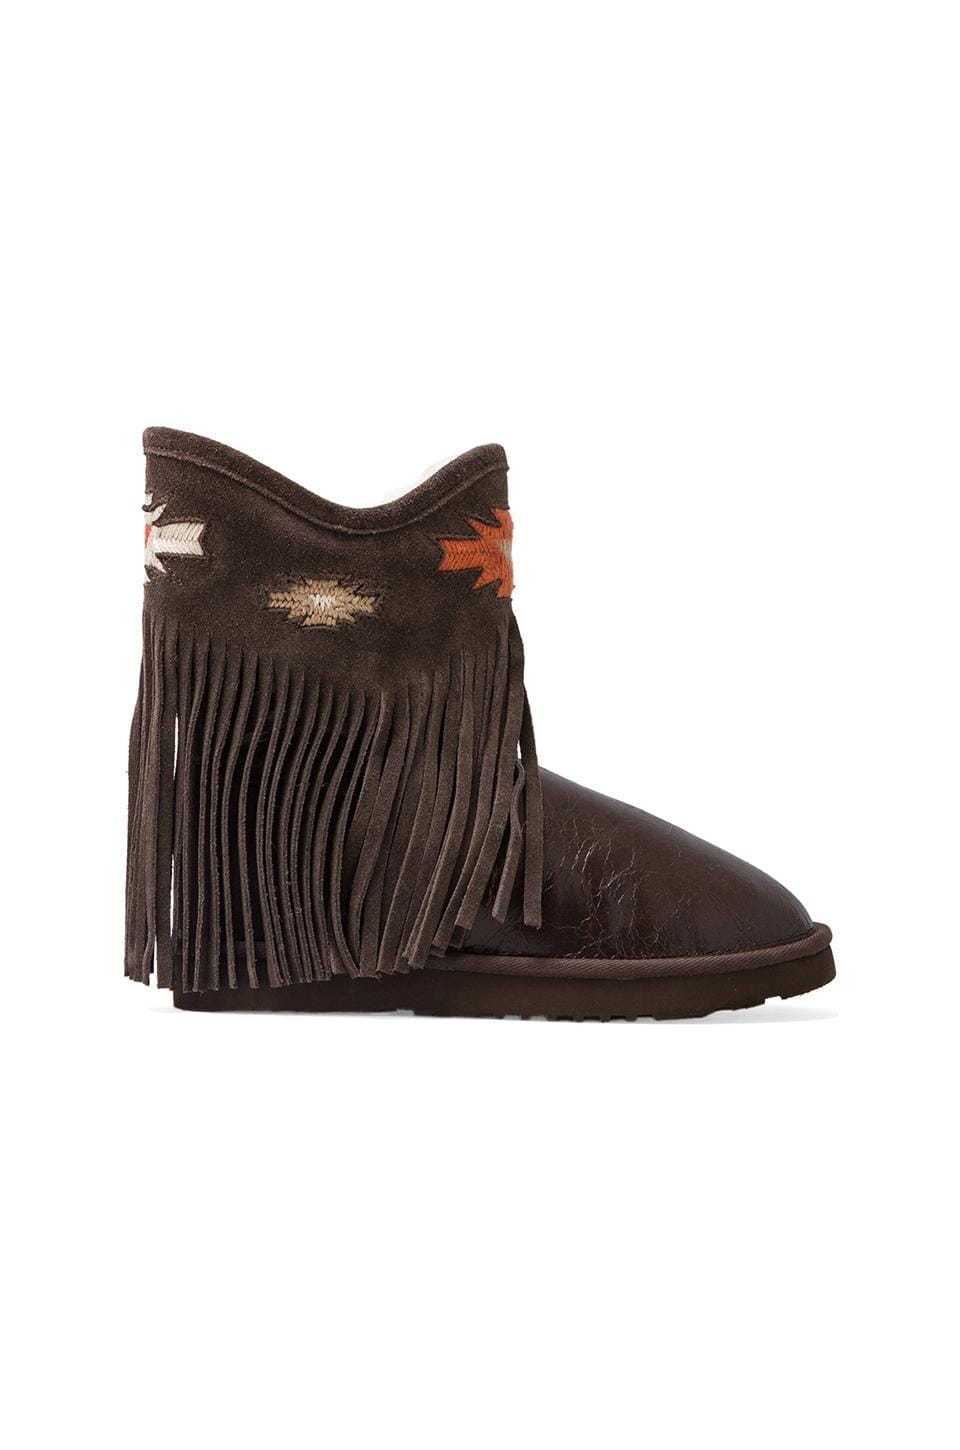 Koolaburra Haley Ankle Deco Boot with Twinface Sheepskin in Cappuchino